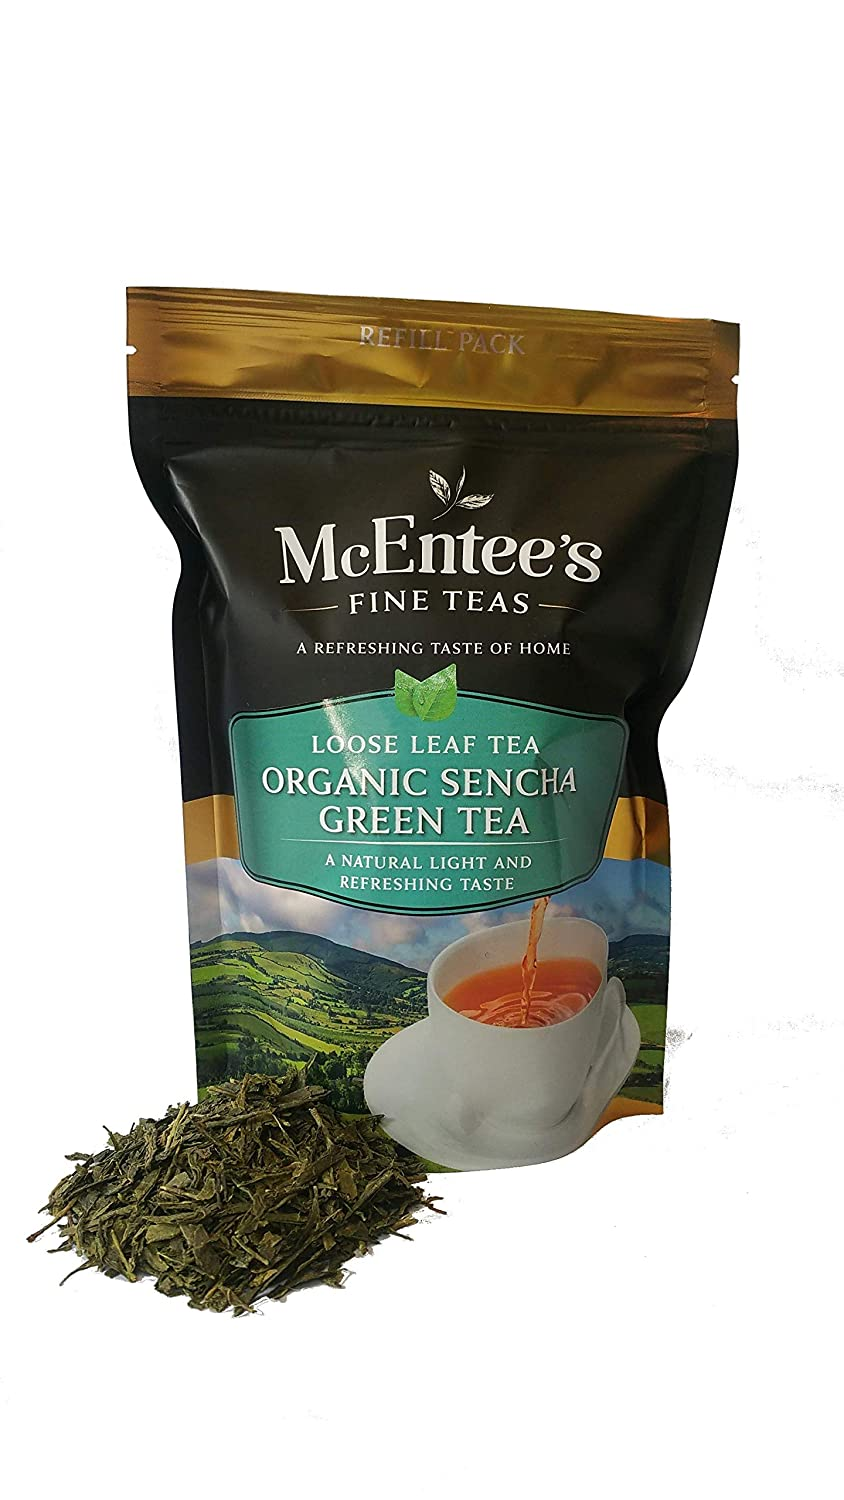 McEntees Organic Sencha Green Tea - 150g Refill Bag ...